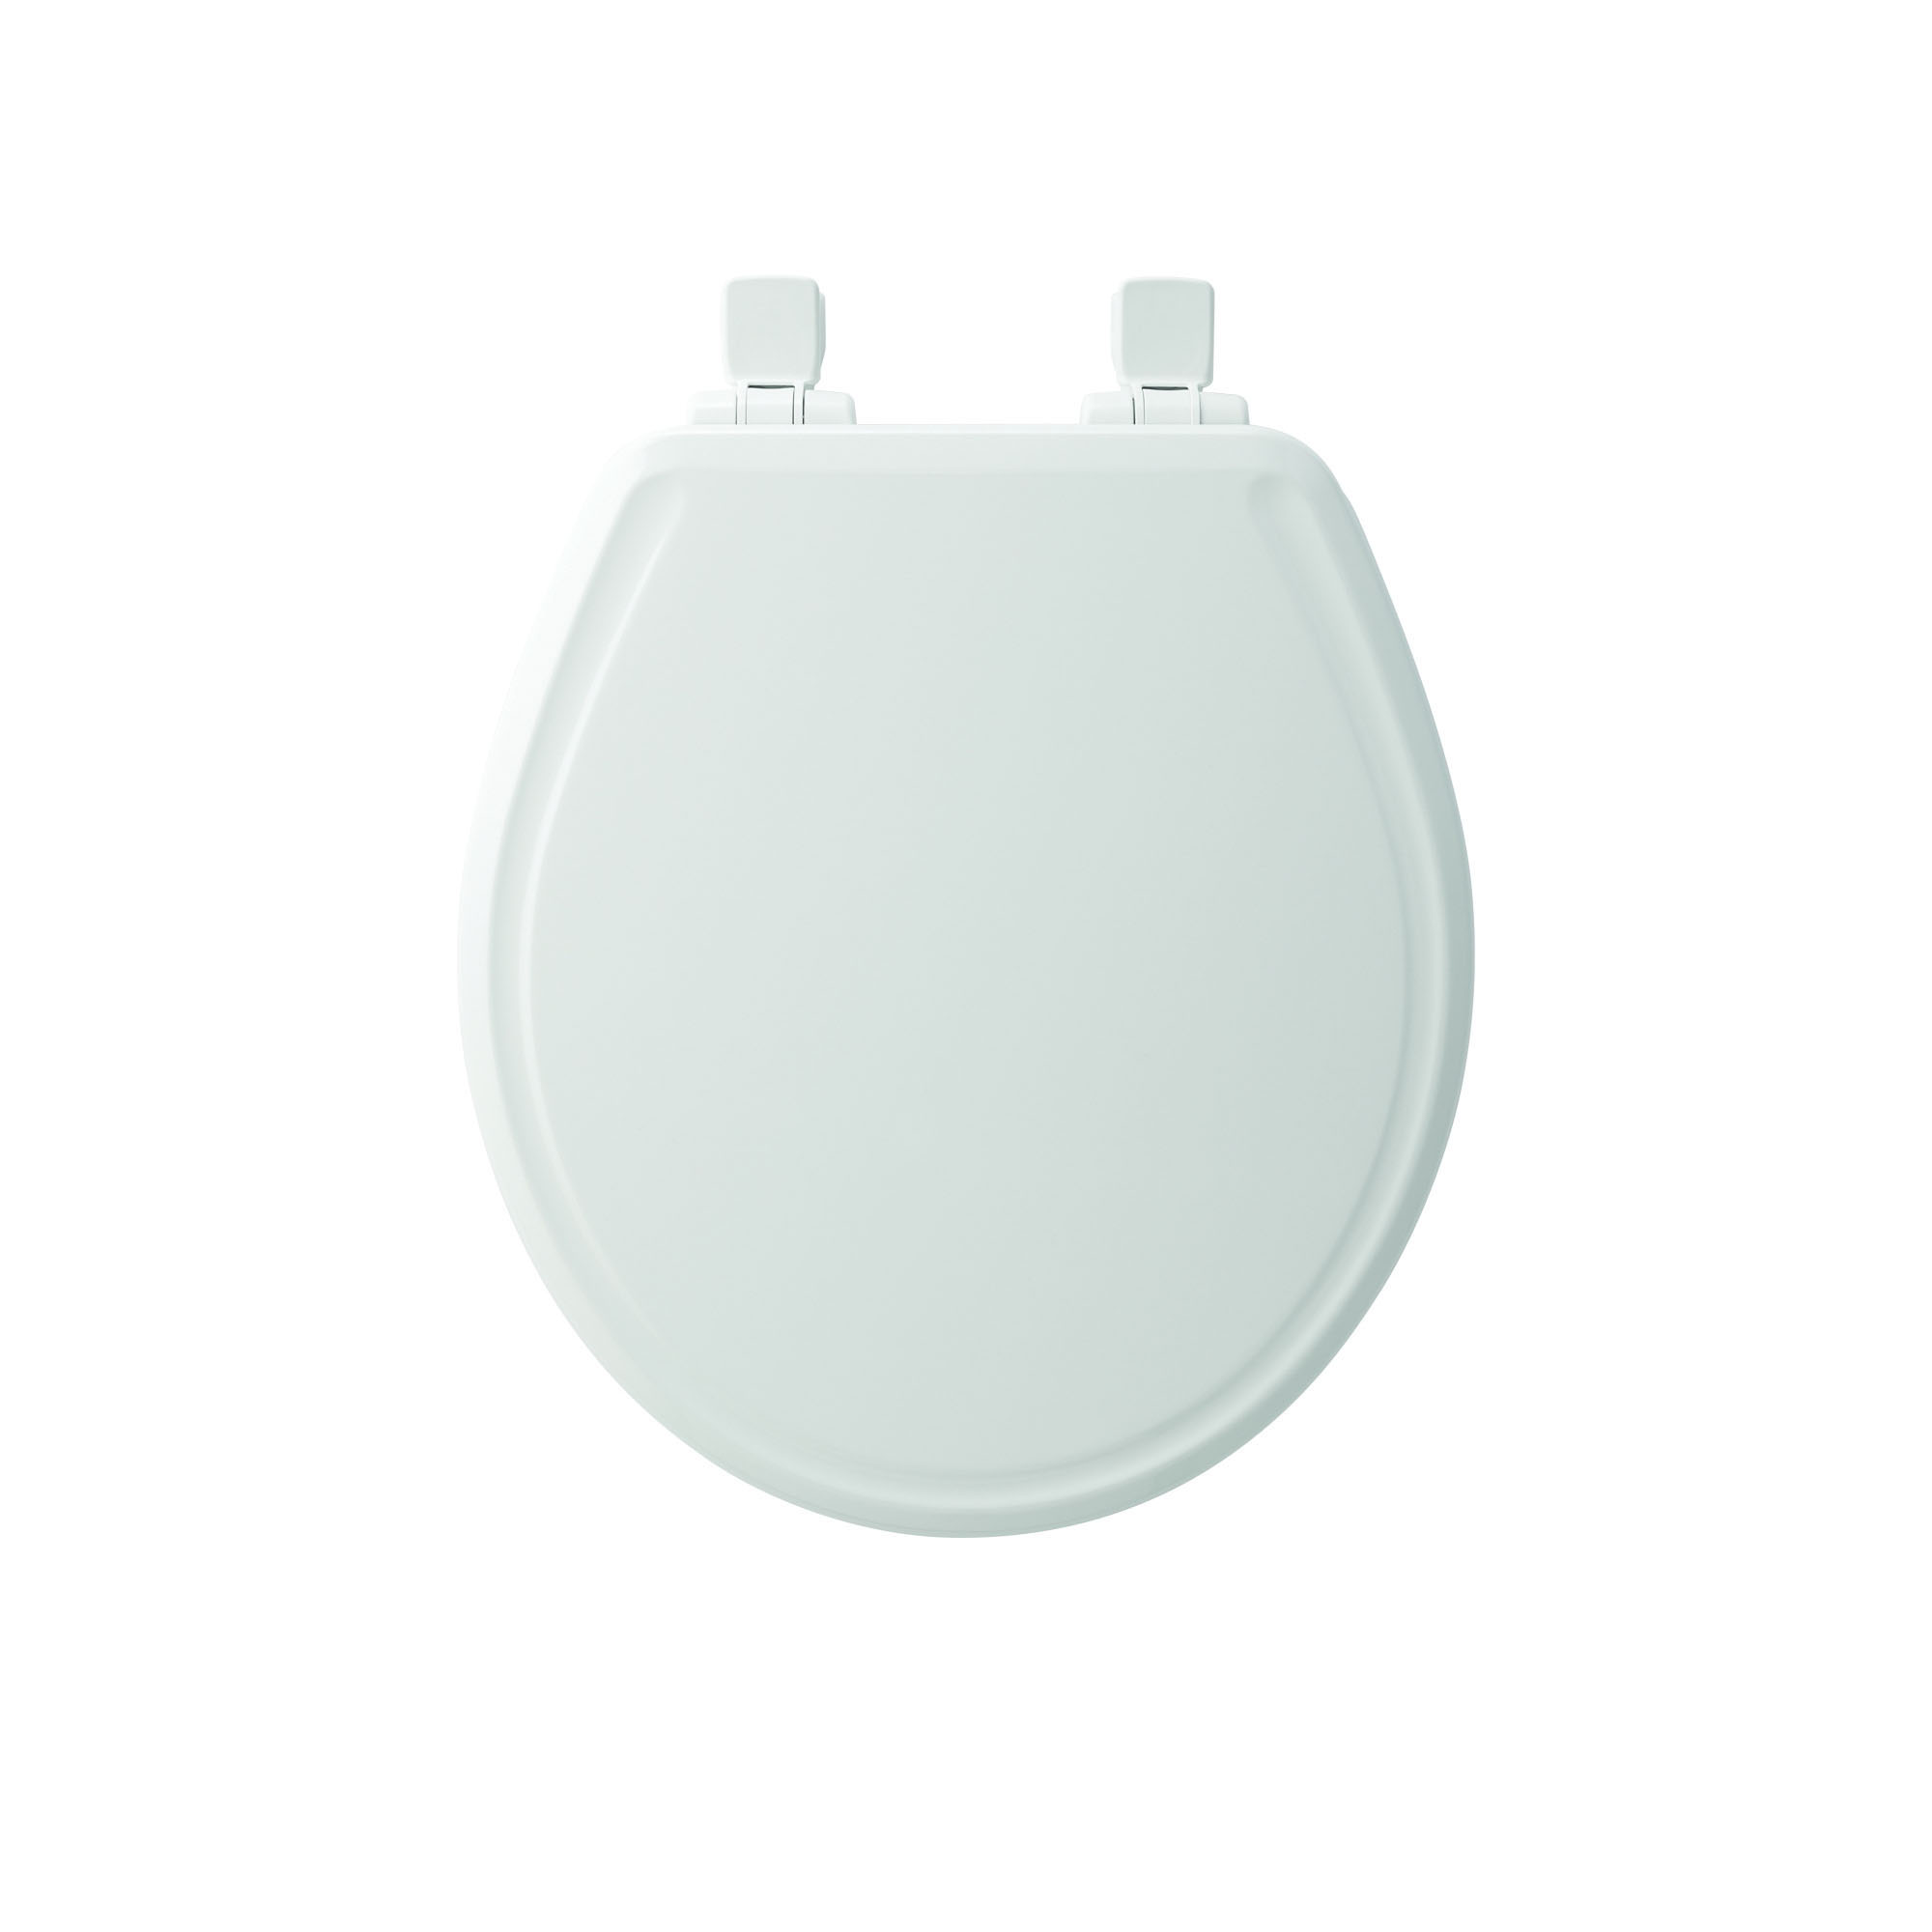 Bemis® 600E3 000 Toilet Seat With Cover, Round Bowl, Closed Front, Molded Wood, Easy Clean/Change® Hinge, White, Domestic